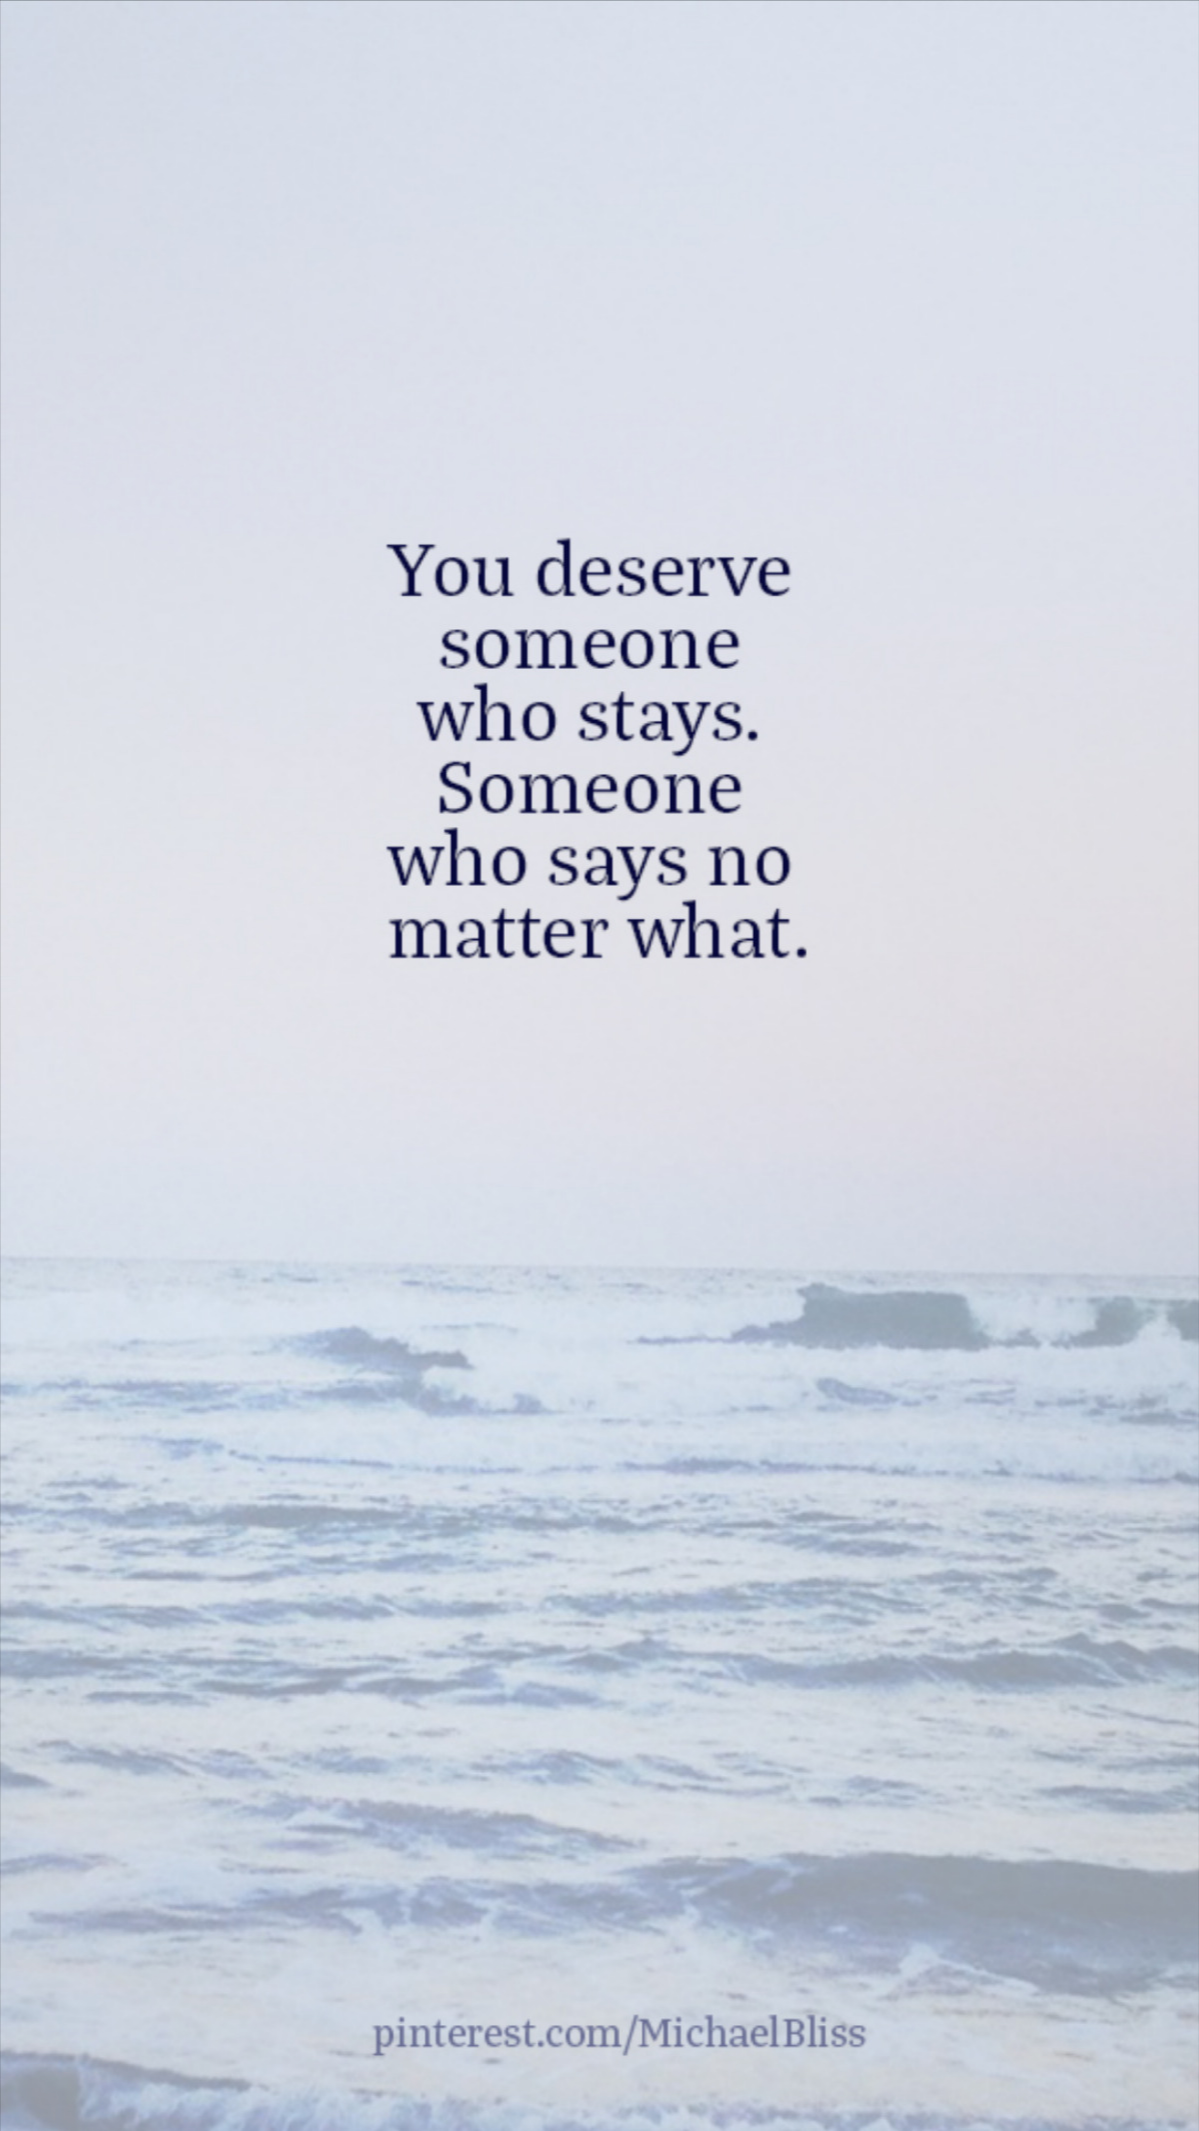 You deserve someone who stays